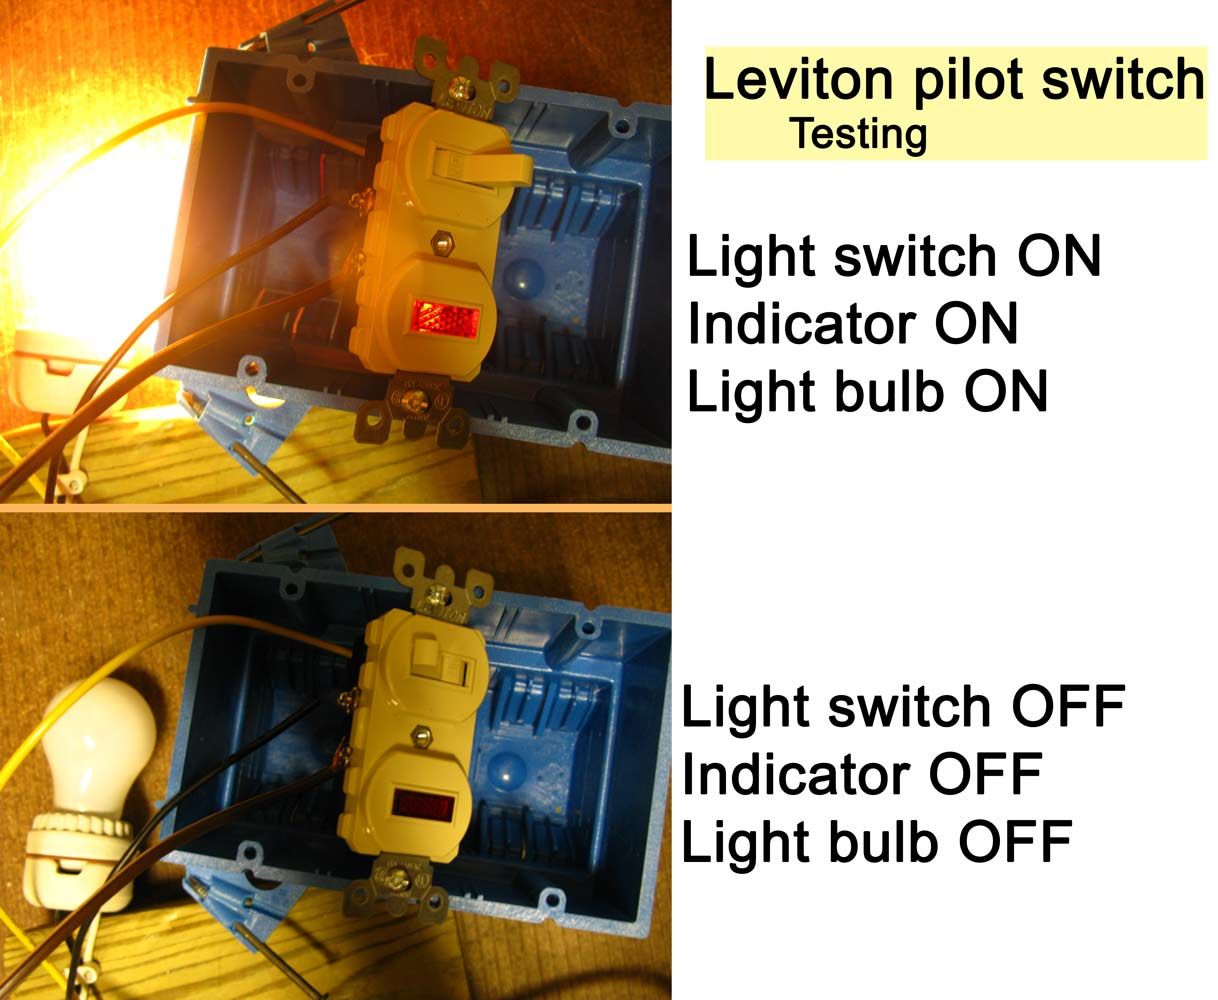 How To Wire Cooper 277 Pilot Light Switch - Leviton 3 Way Dimmer Switch Wiring Diagram